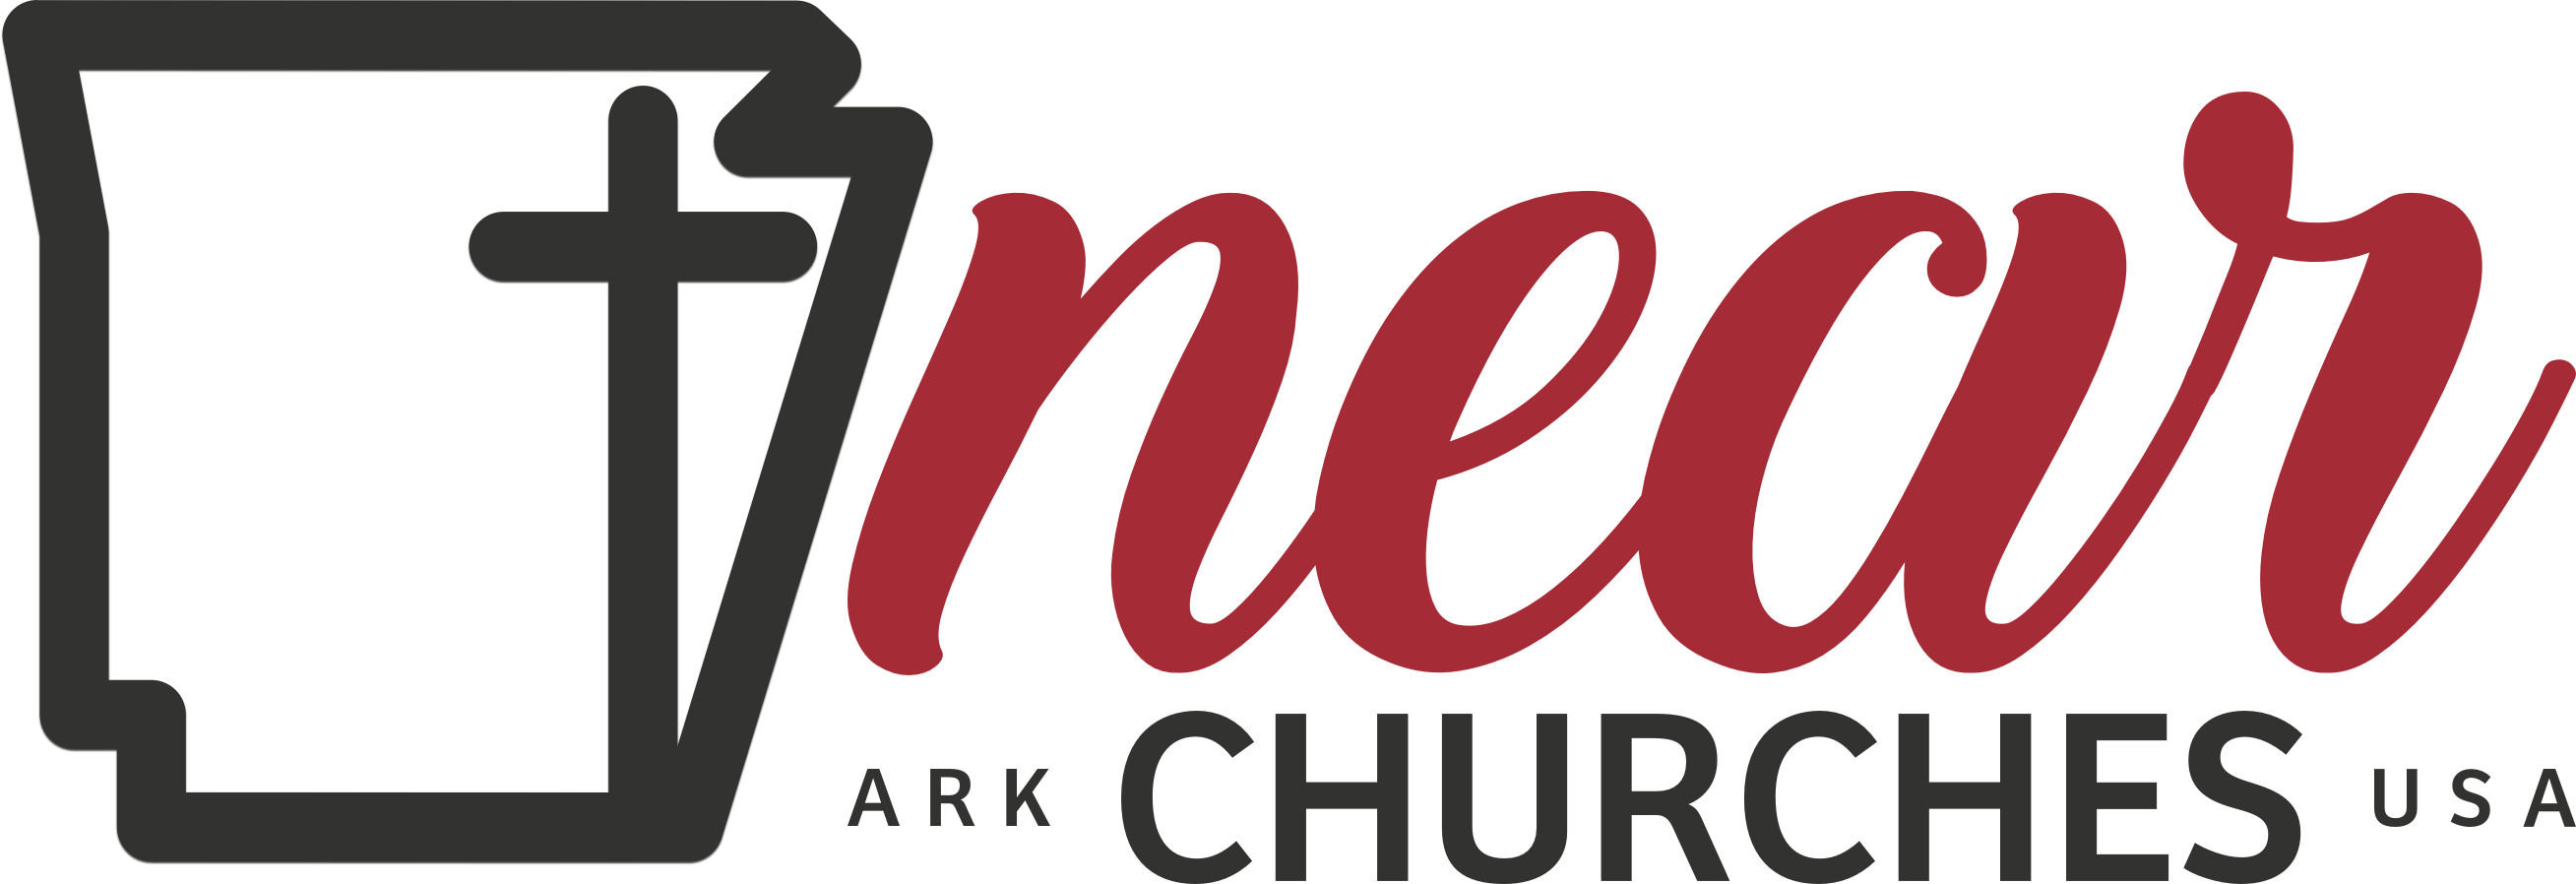 NEARchurches.com